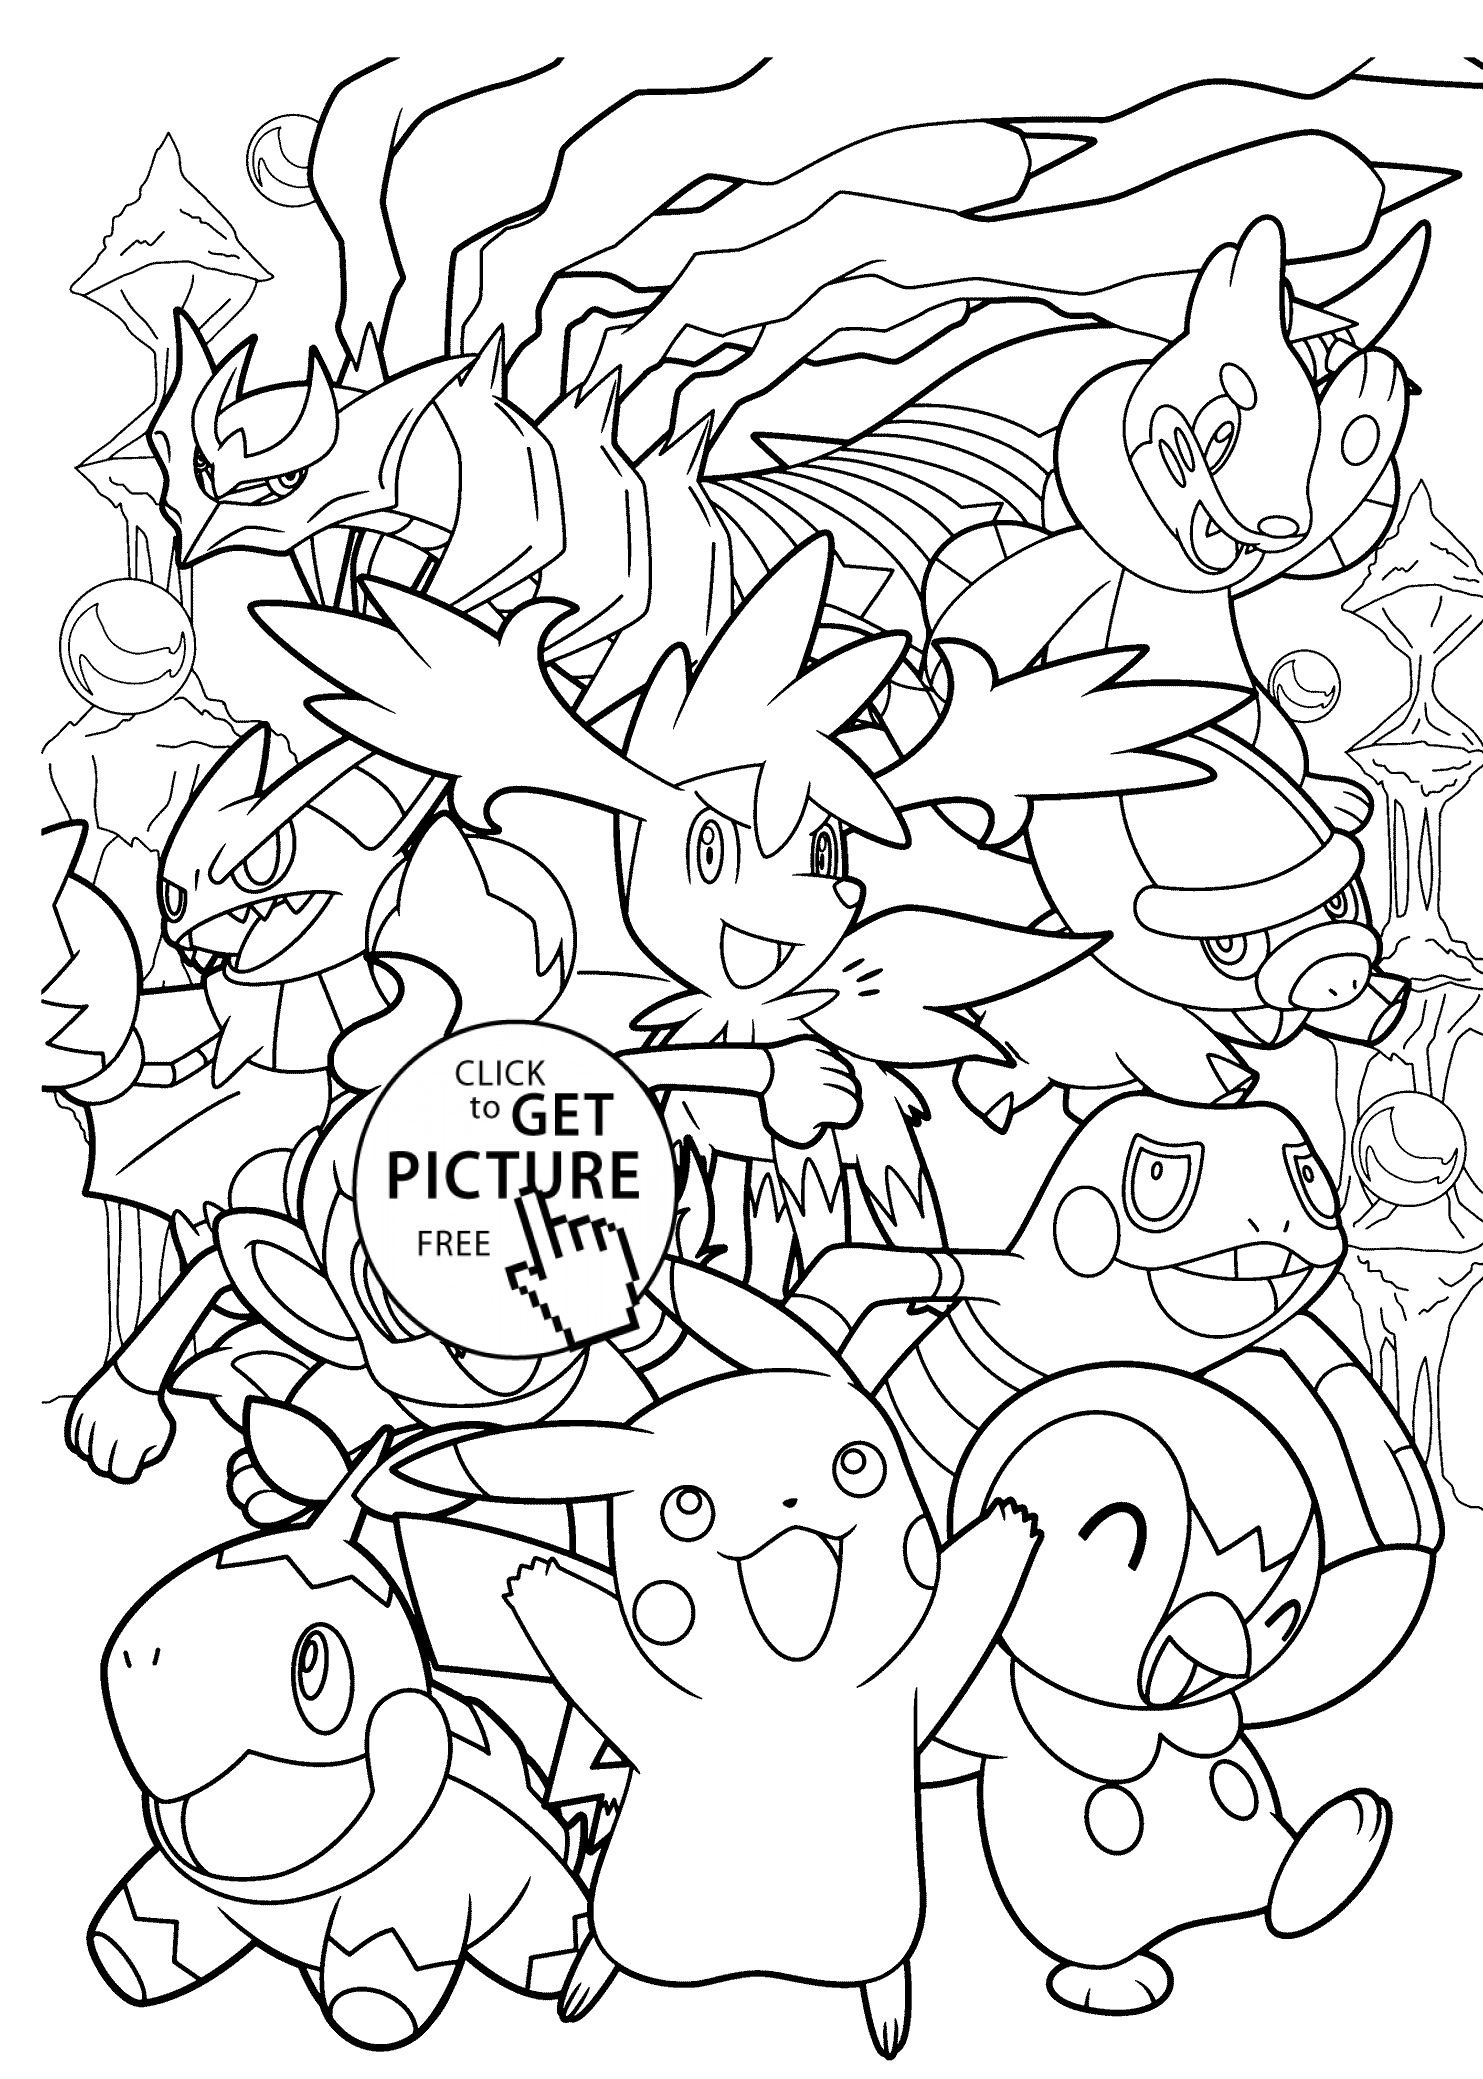 hard pokemon coloring pages pokemon coloring games free educative printable in 2020 coloring pages pokemon hard